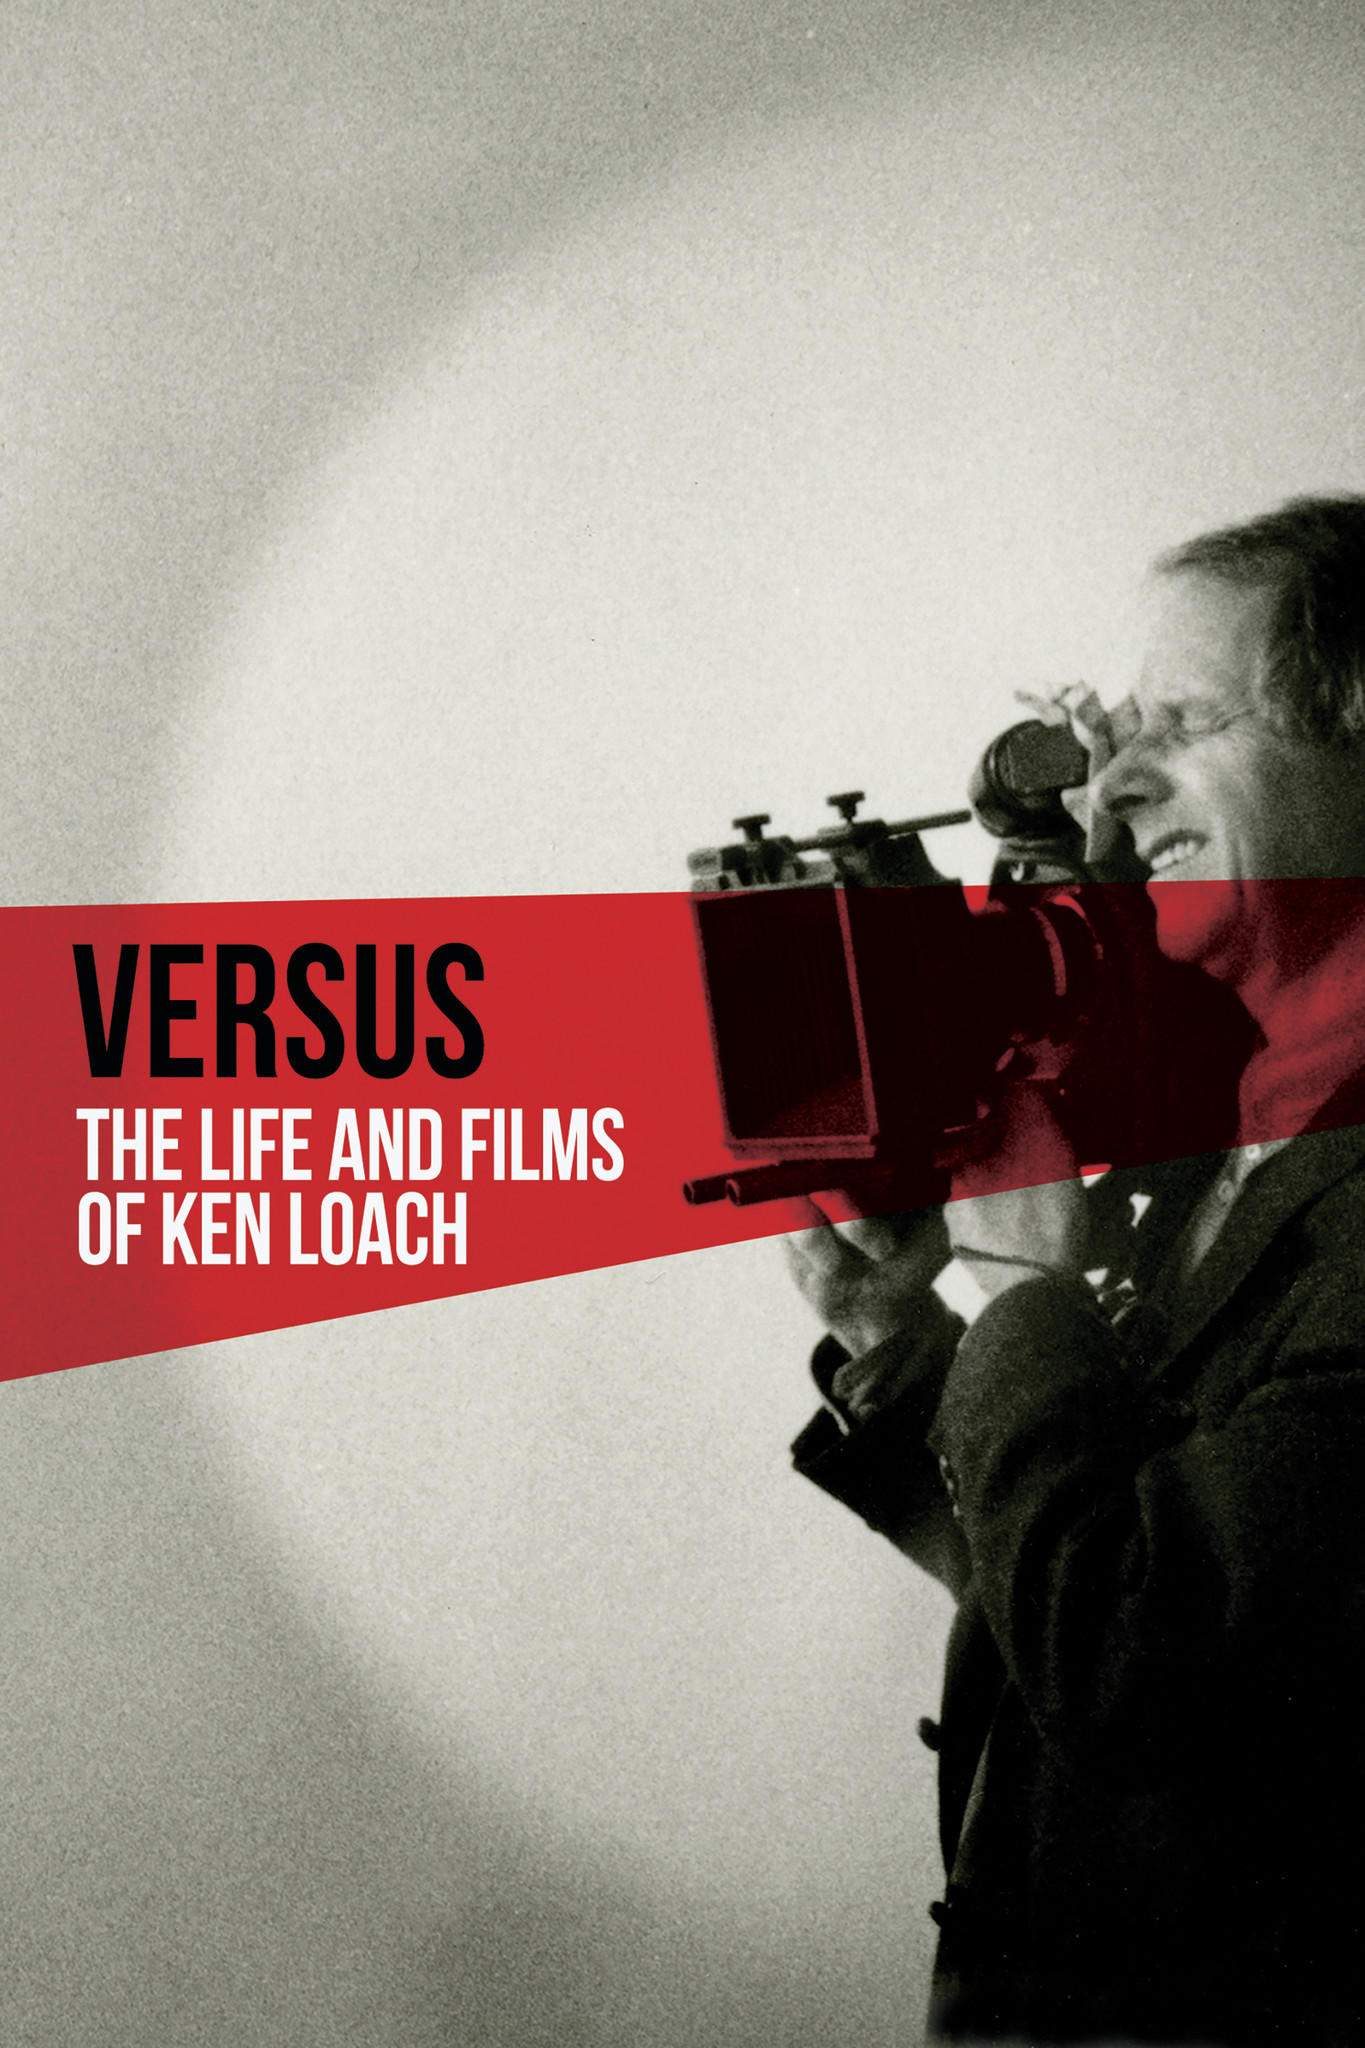 Versus: The Life and Films of Ken Loach kapak